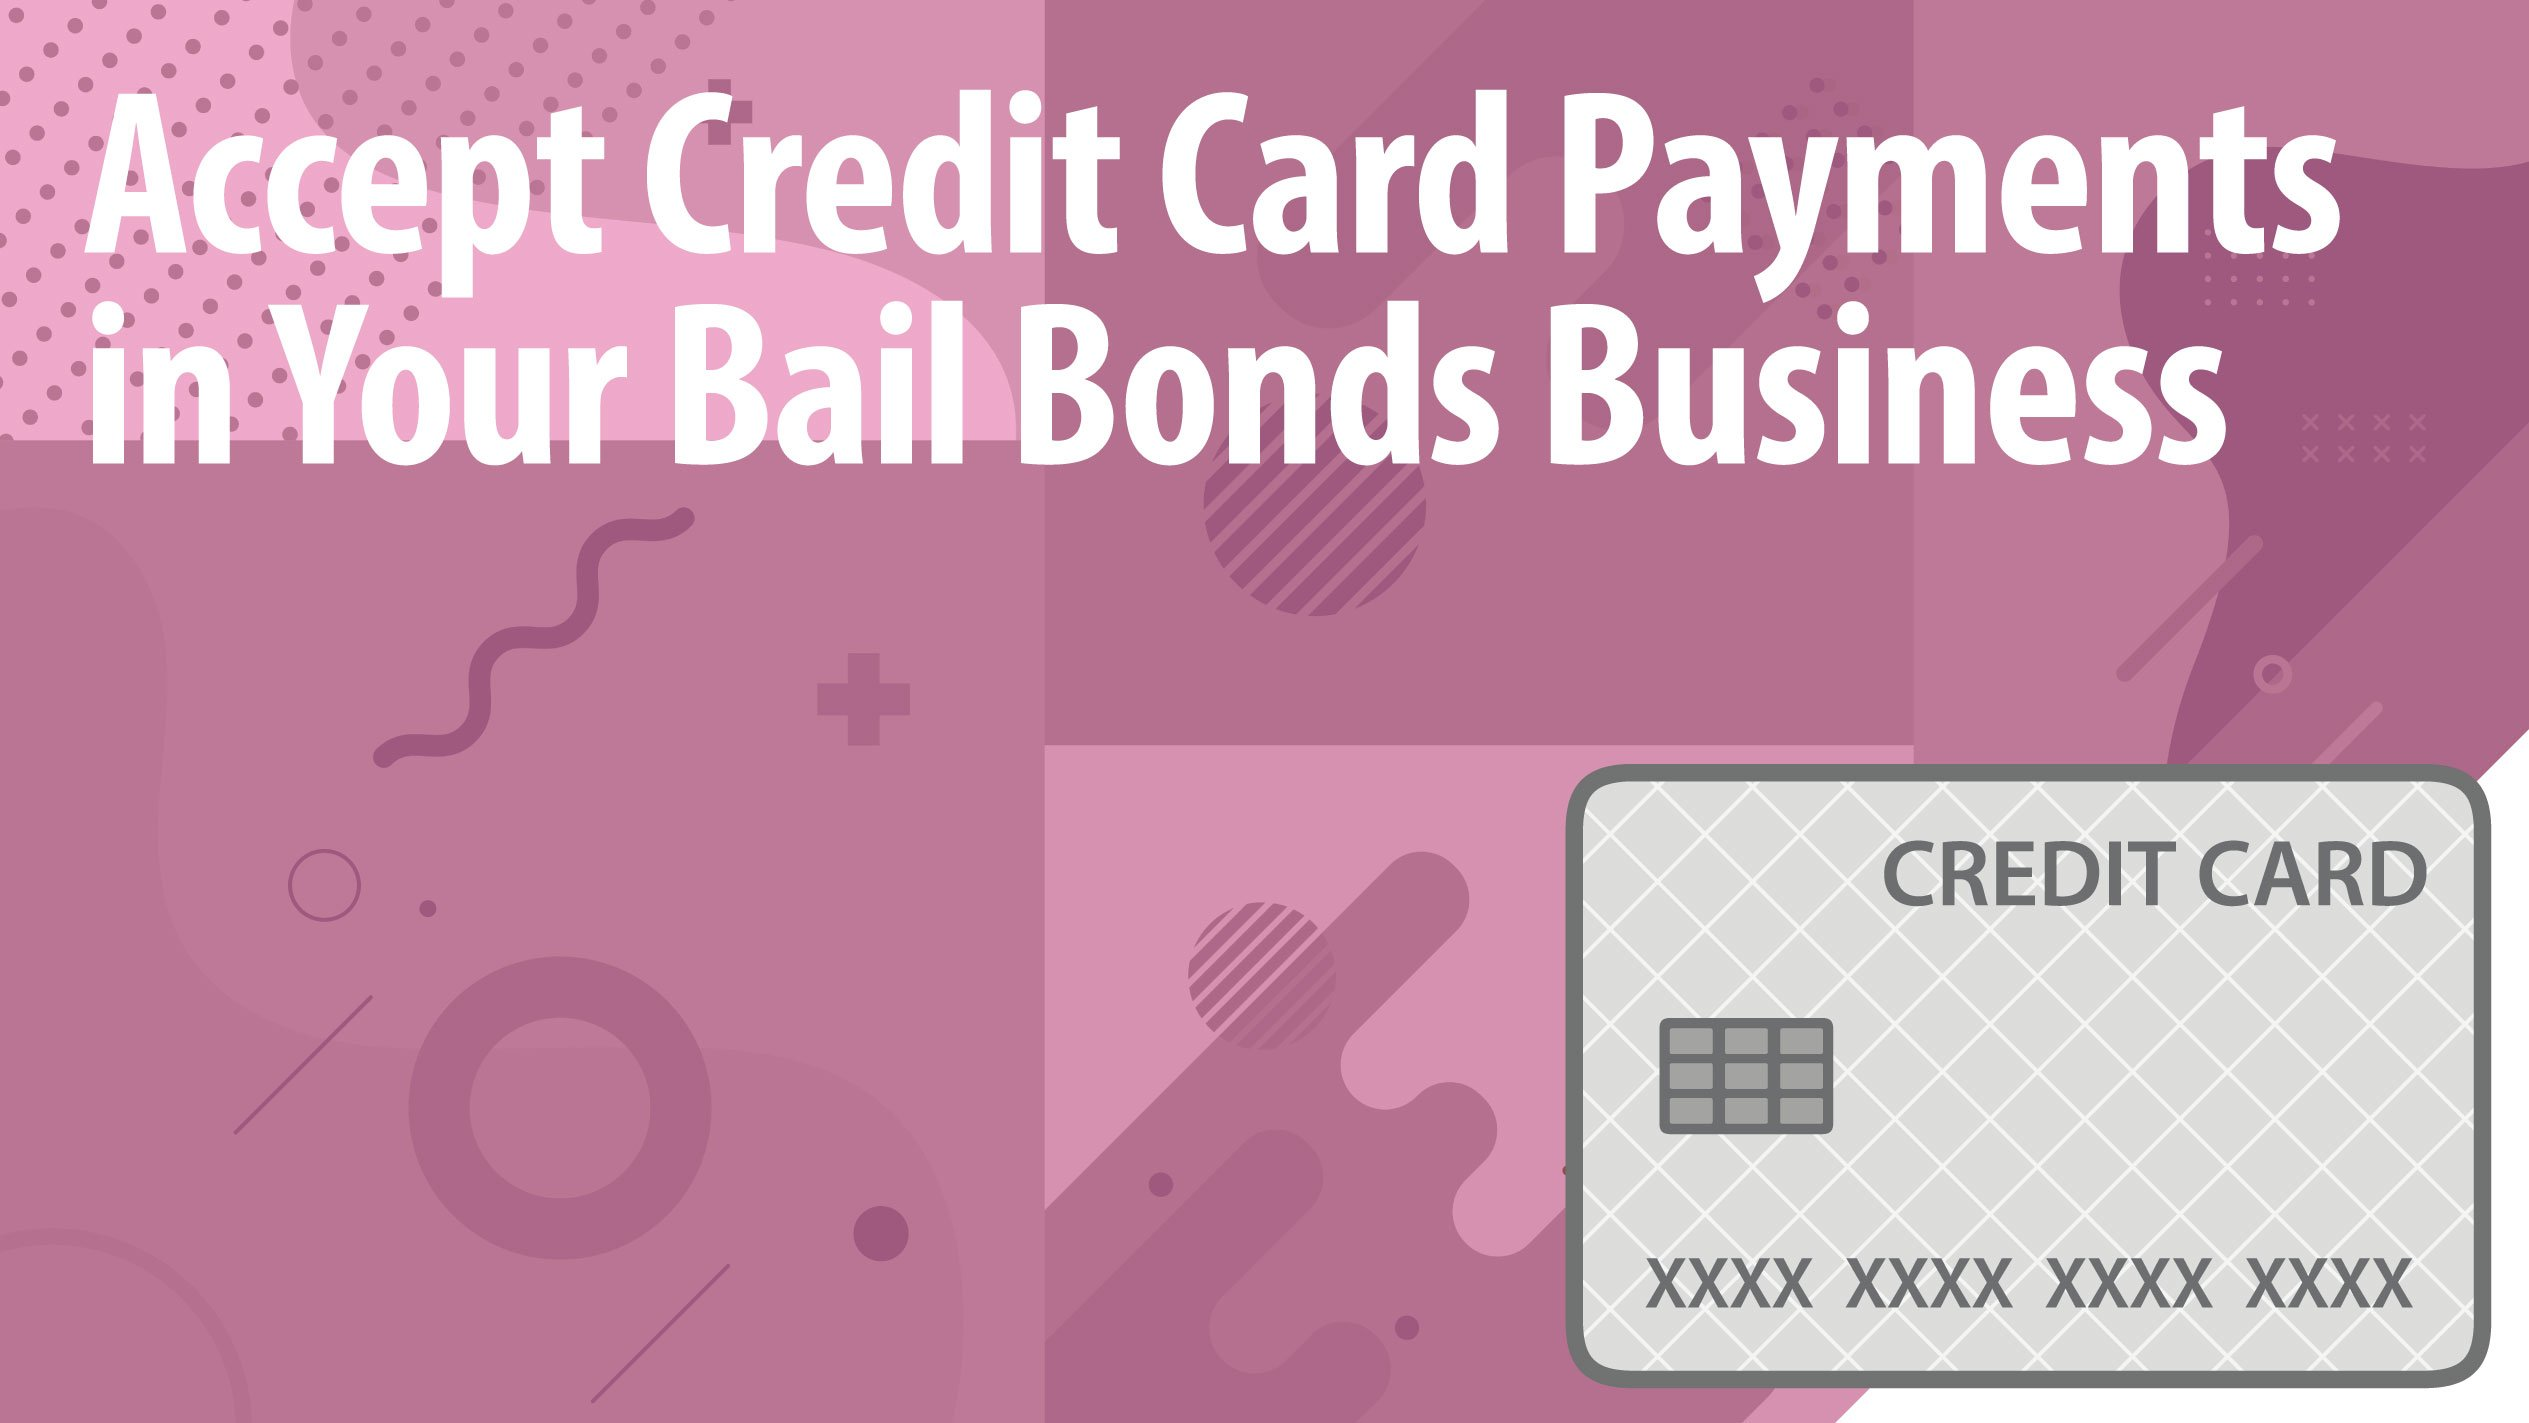 Accept Credit Card Payments in Your Bail Bonds Business